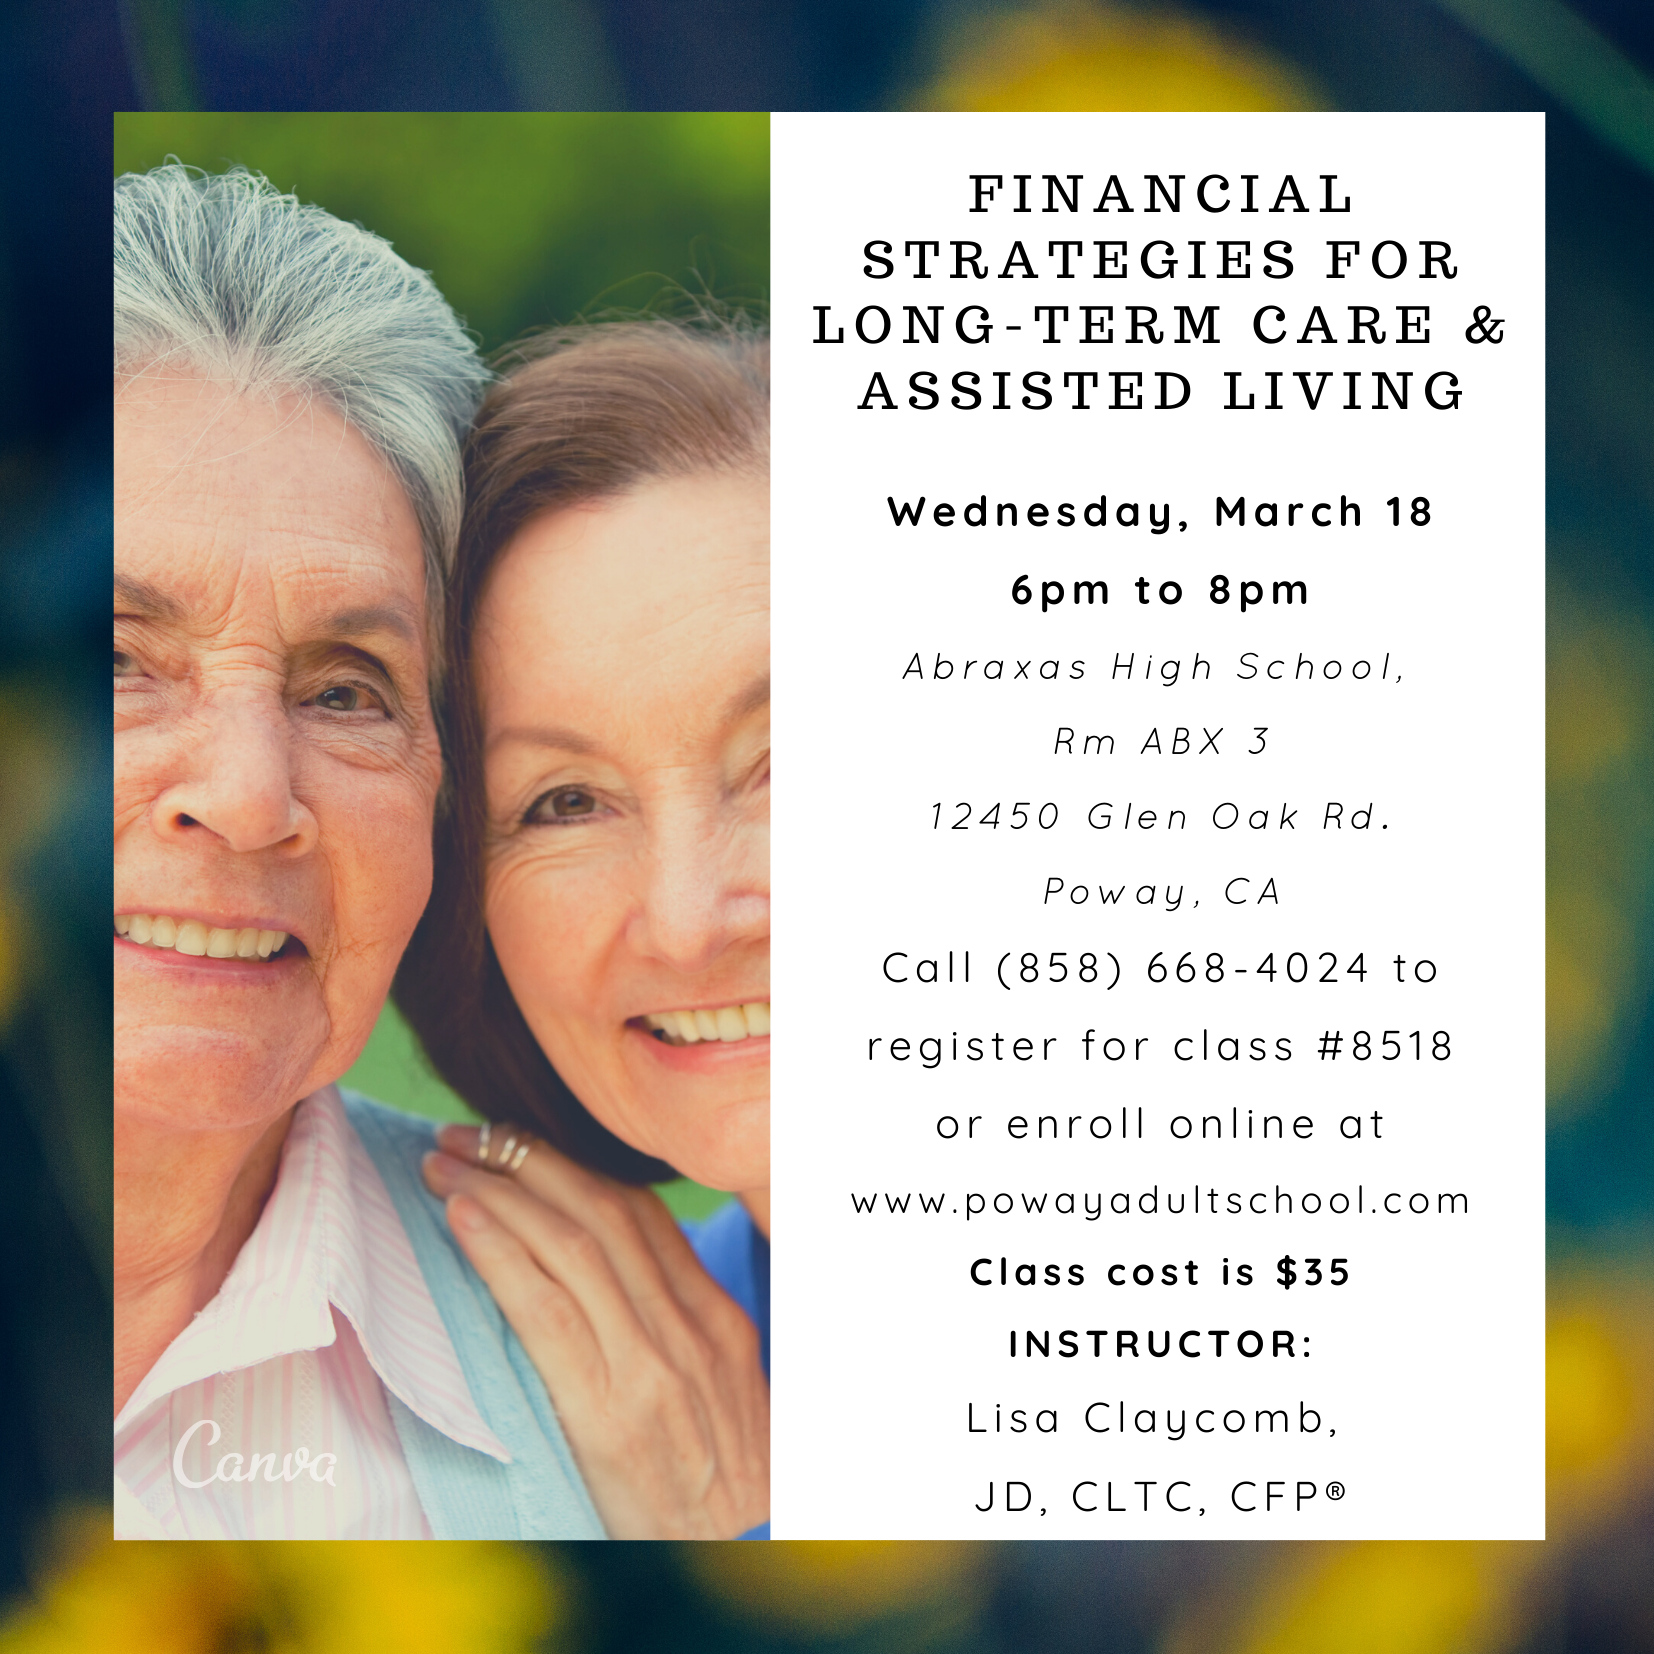 Financial Strategies for Long-Term Care & Assisted Living Thumbnail